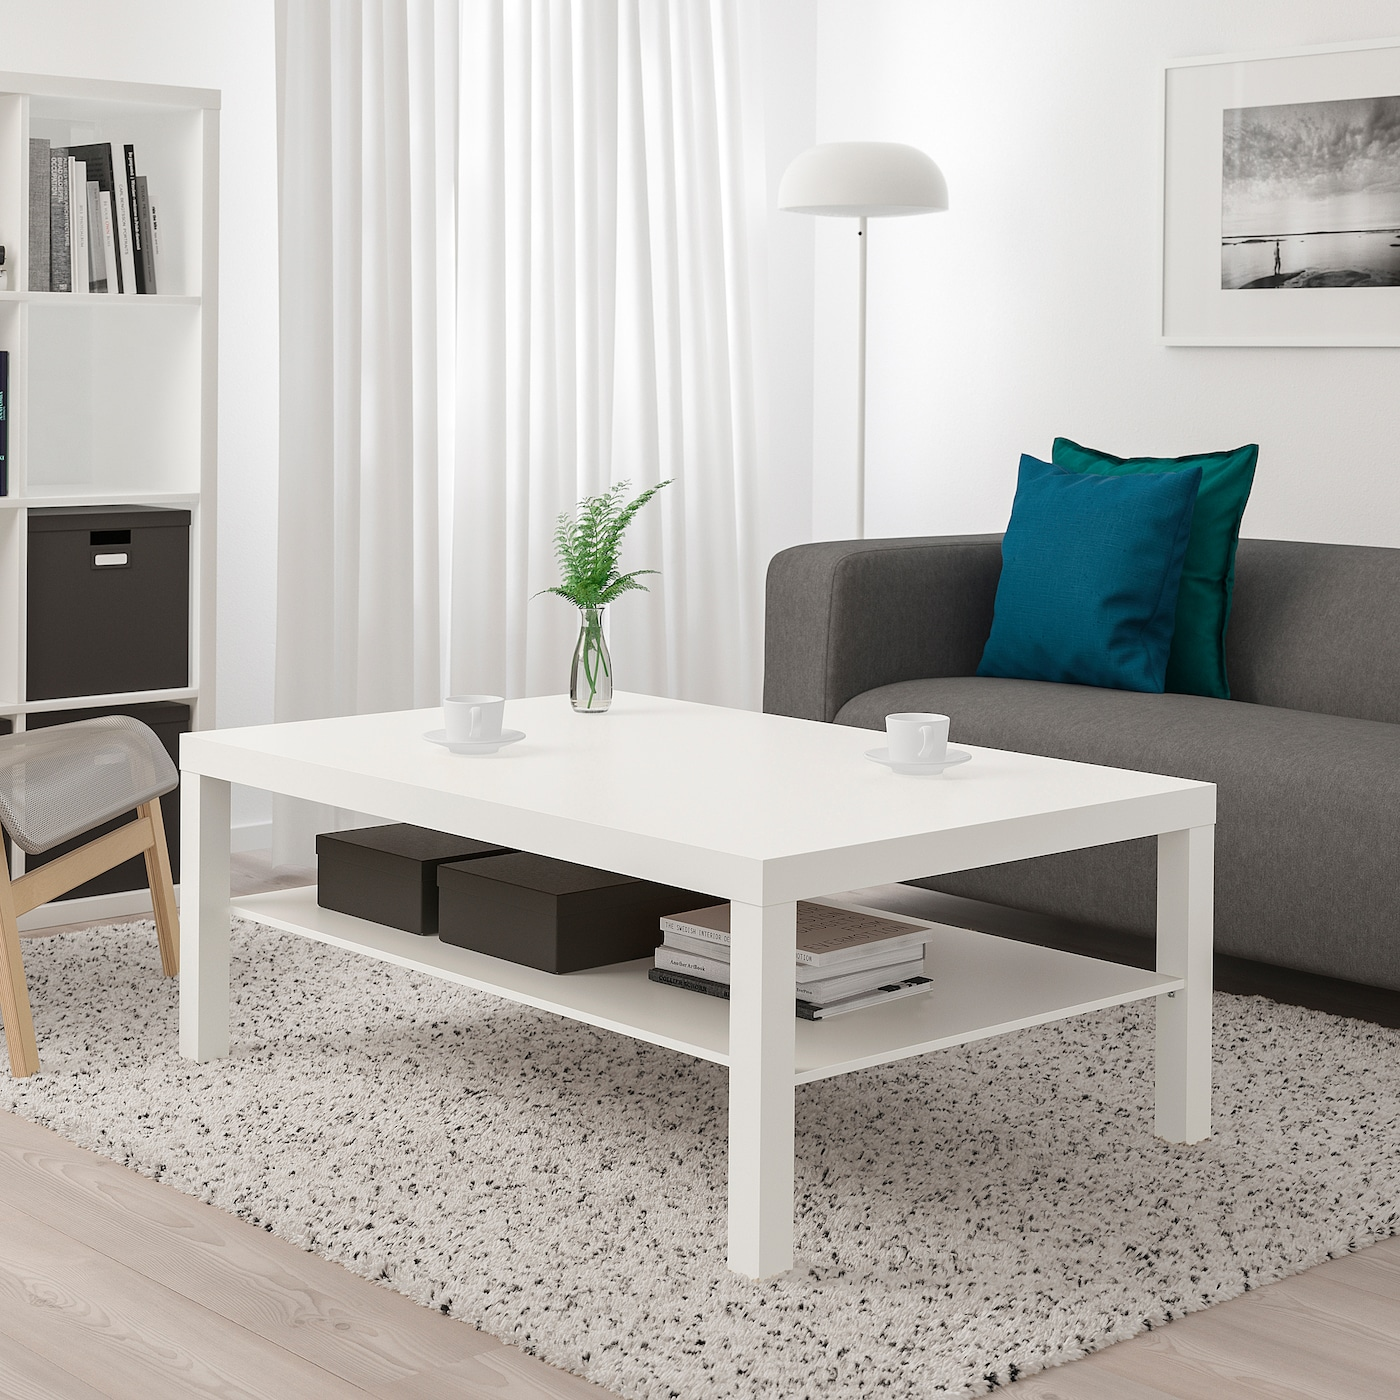 Grey Coffee Tables At Ikea Ikea Grey Coffee Table Drone Fest They Can Be Retextured Studded And Even Given Heavy Marble Tops Haya Home [ 1400 x 1400 Pixel ]